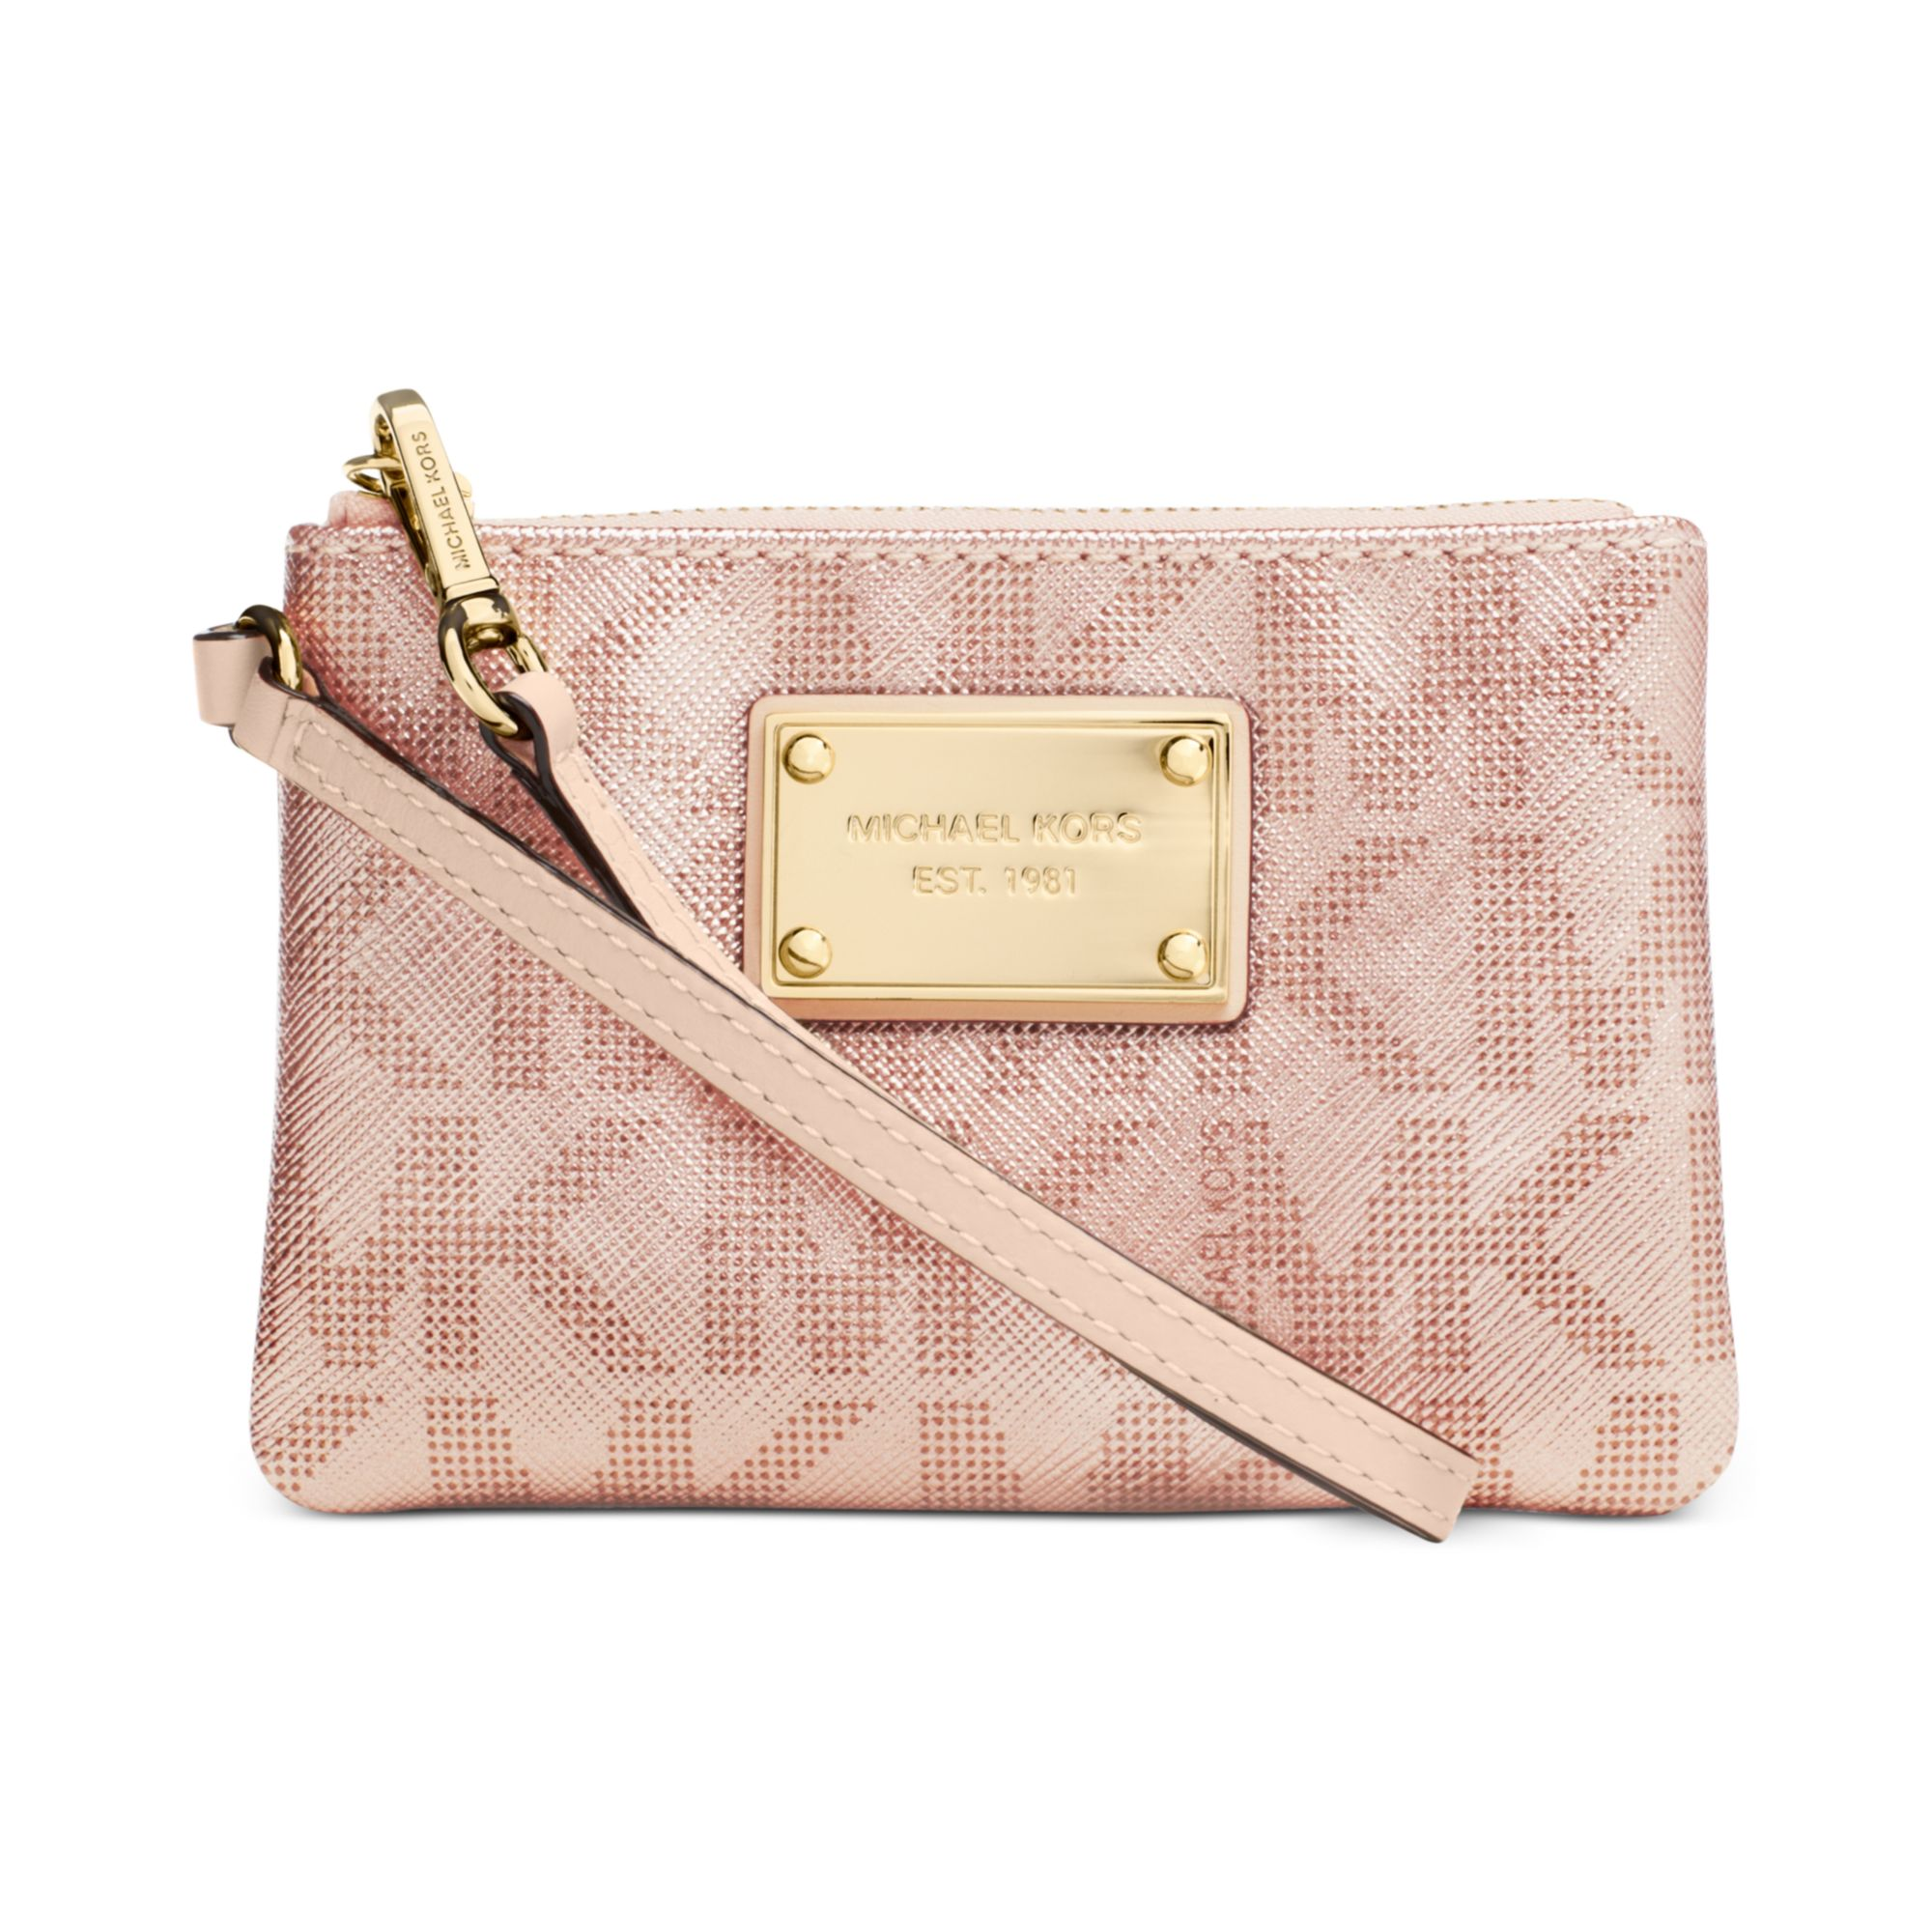 f8520bccd2aa Lyst - Michael Kors Small Signature Wristlet in Pink